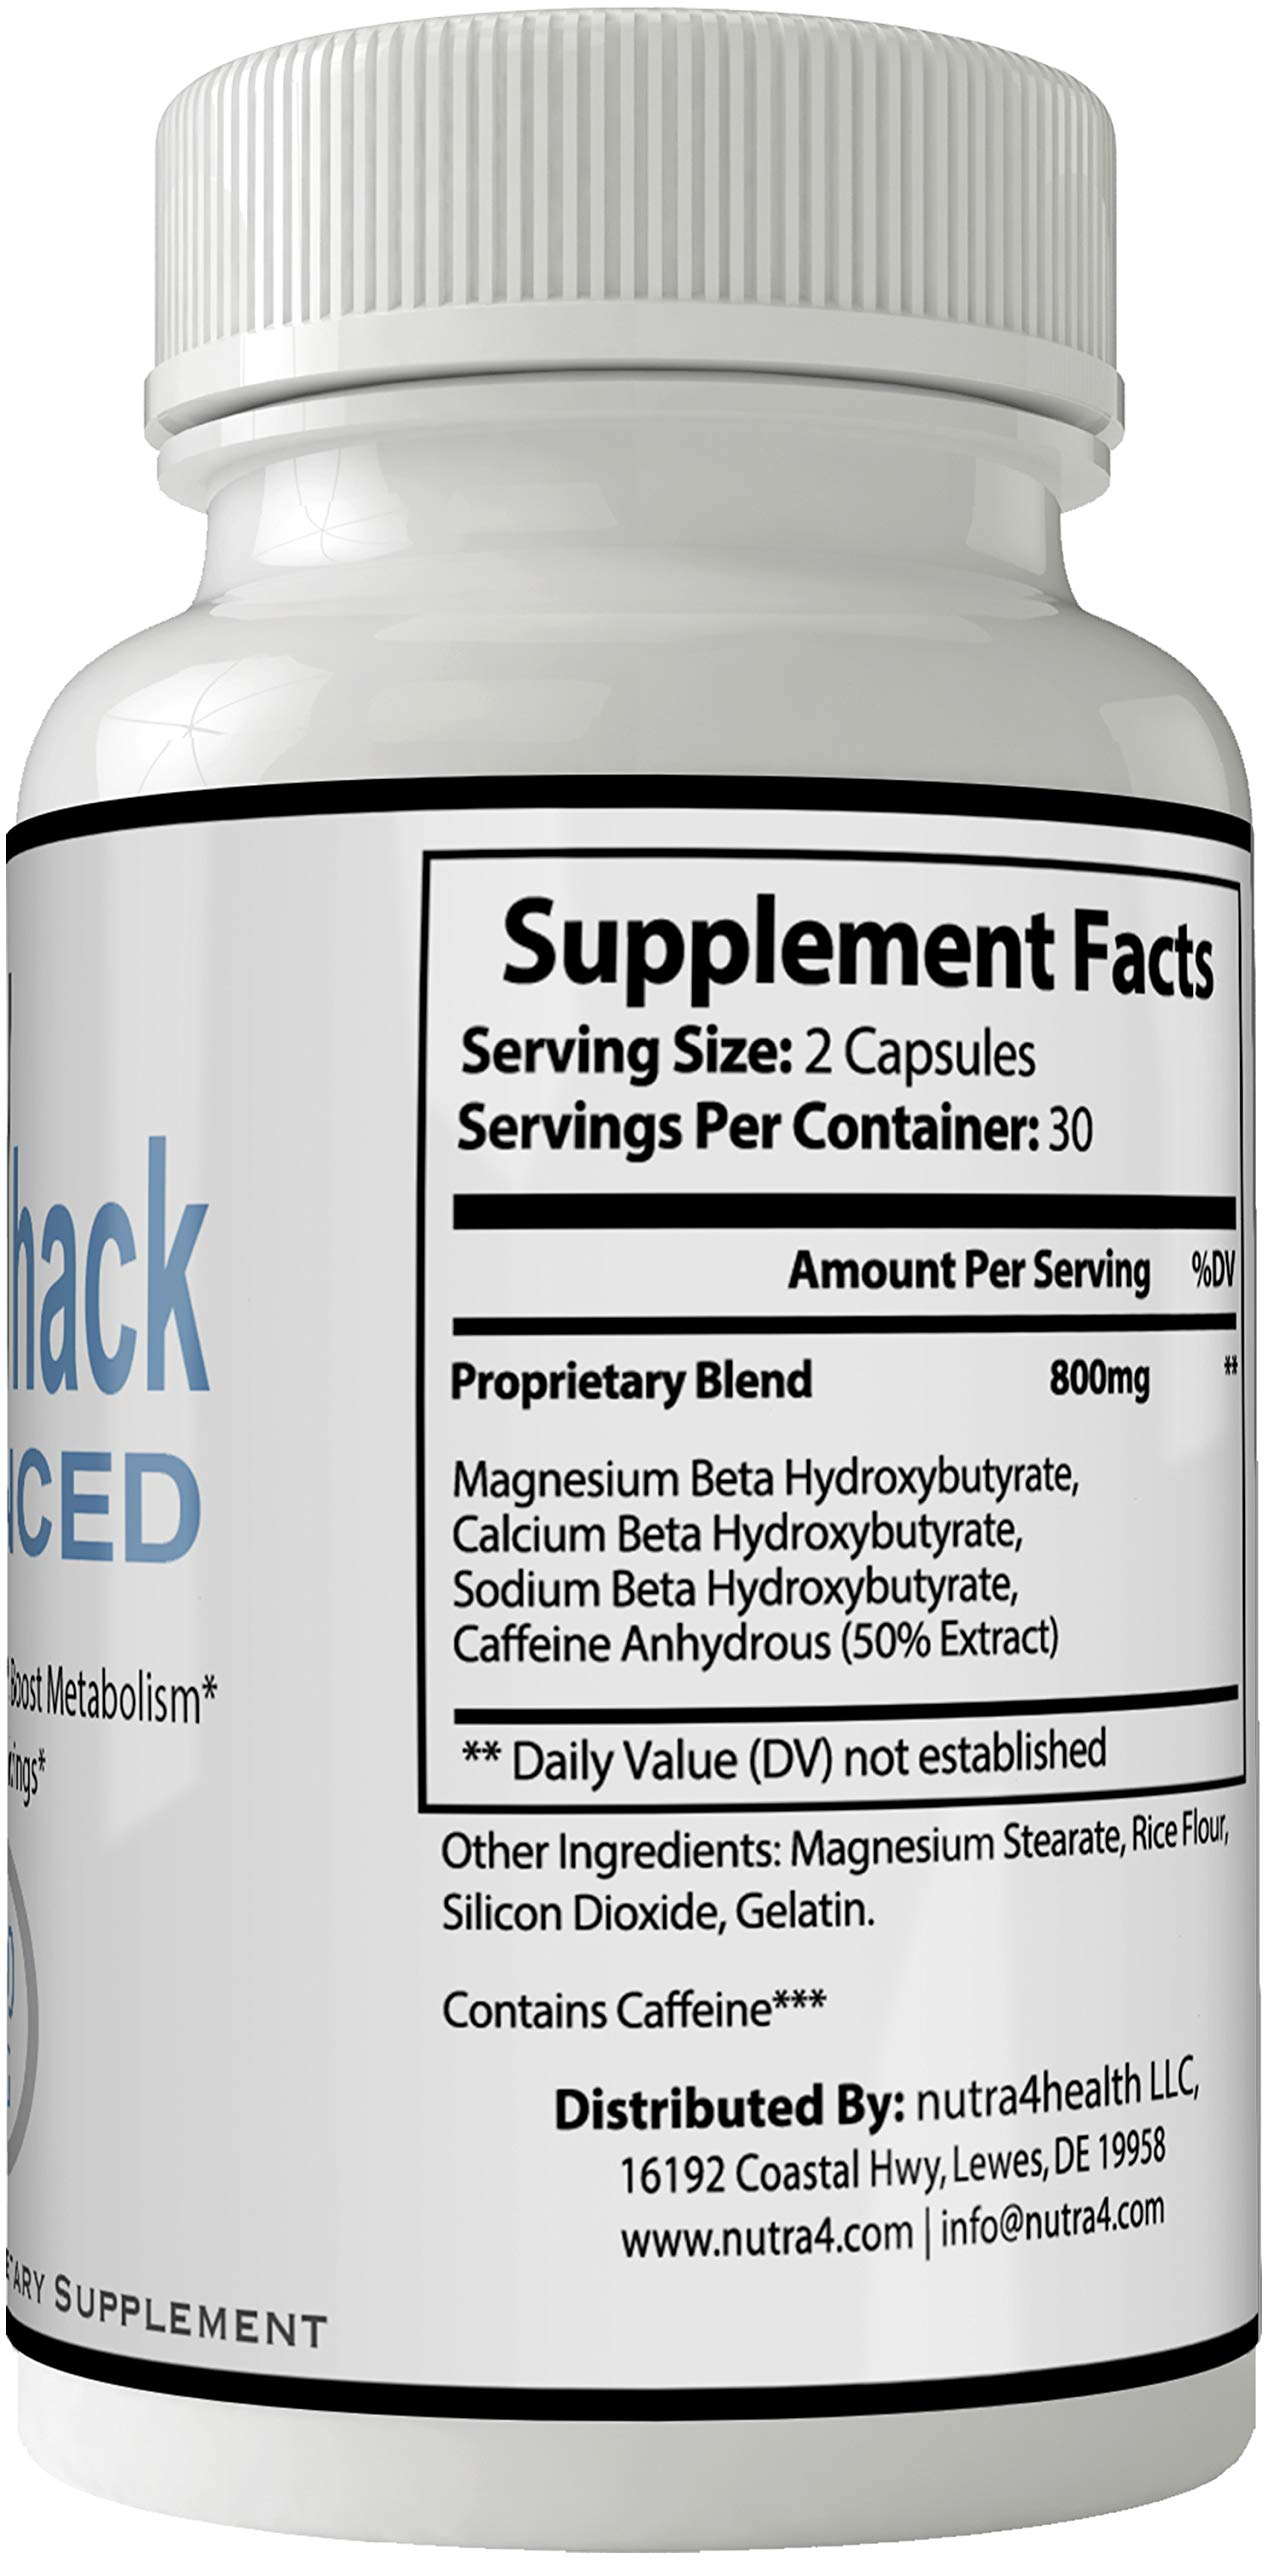 Keto Hack Advanced Capsules Weight Loss Pills Supplement, Appetite Suppressant with Ultra Advance Natural Ketogenic 800 mg Fast Formula with BHB Salts Ketone Diet Boost Metabolism by nutra4health LLC (Image #2)